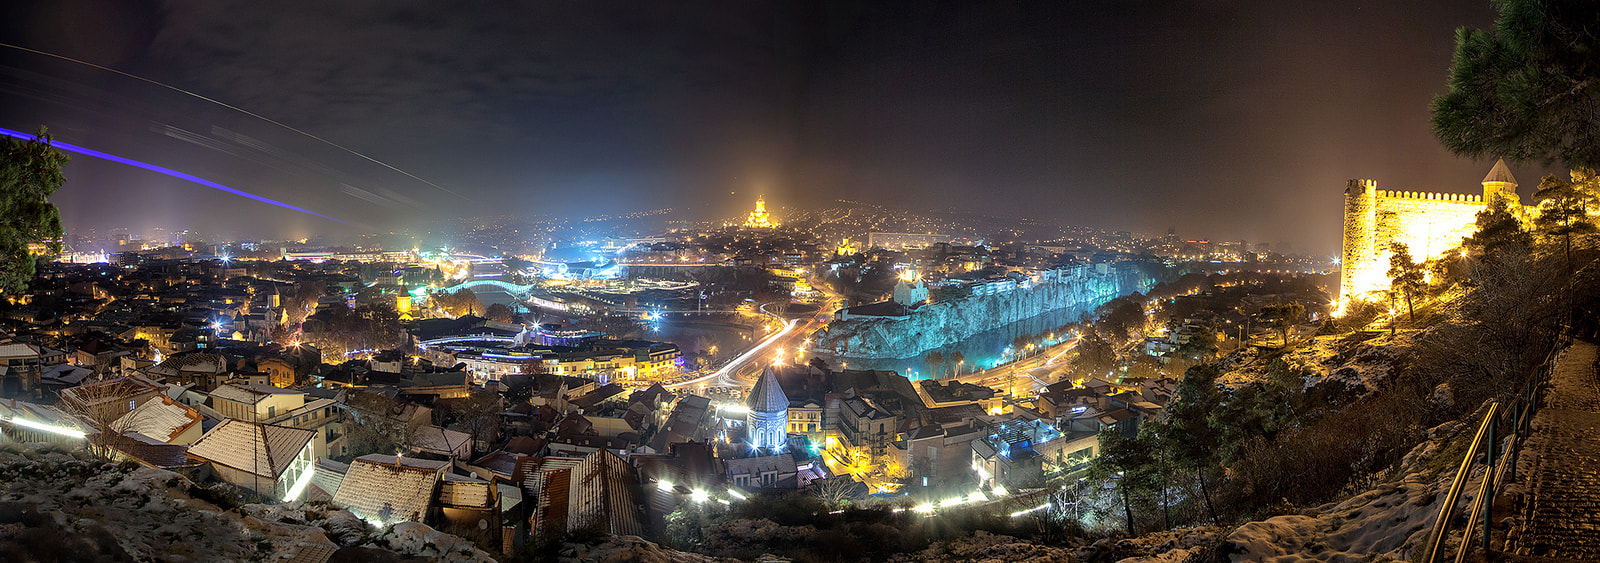 Photograph Tbilisi At Night by Levan  Nioradze on 500px